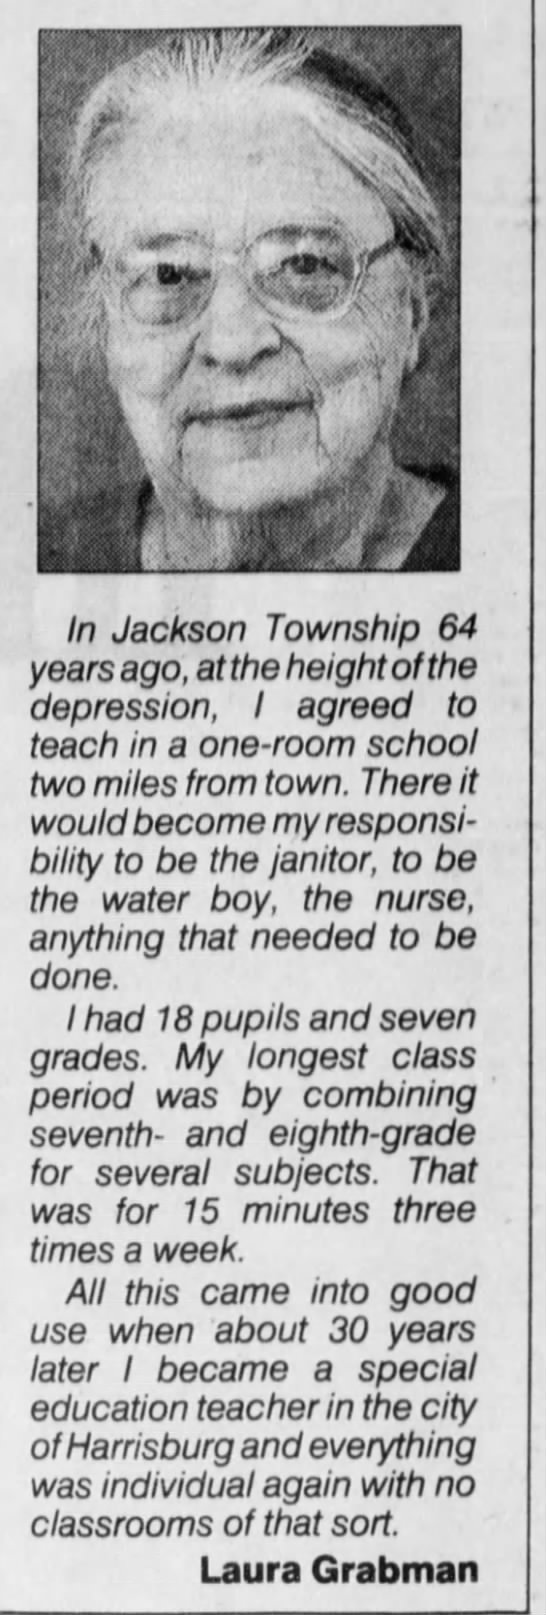 Pittsburgh Post Gazette - 4 Sep 1994 - interview with Laura Rebecca Grabman about school memory - . '-Aw '-Aw '-Aw In Jackson Township 64 years...